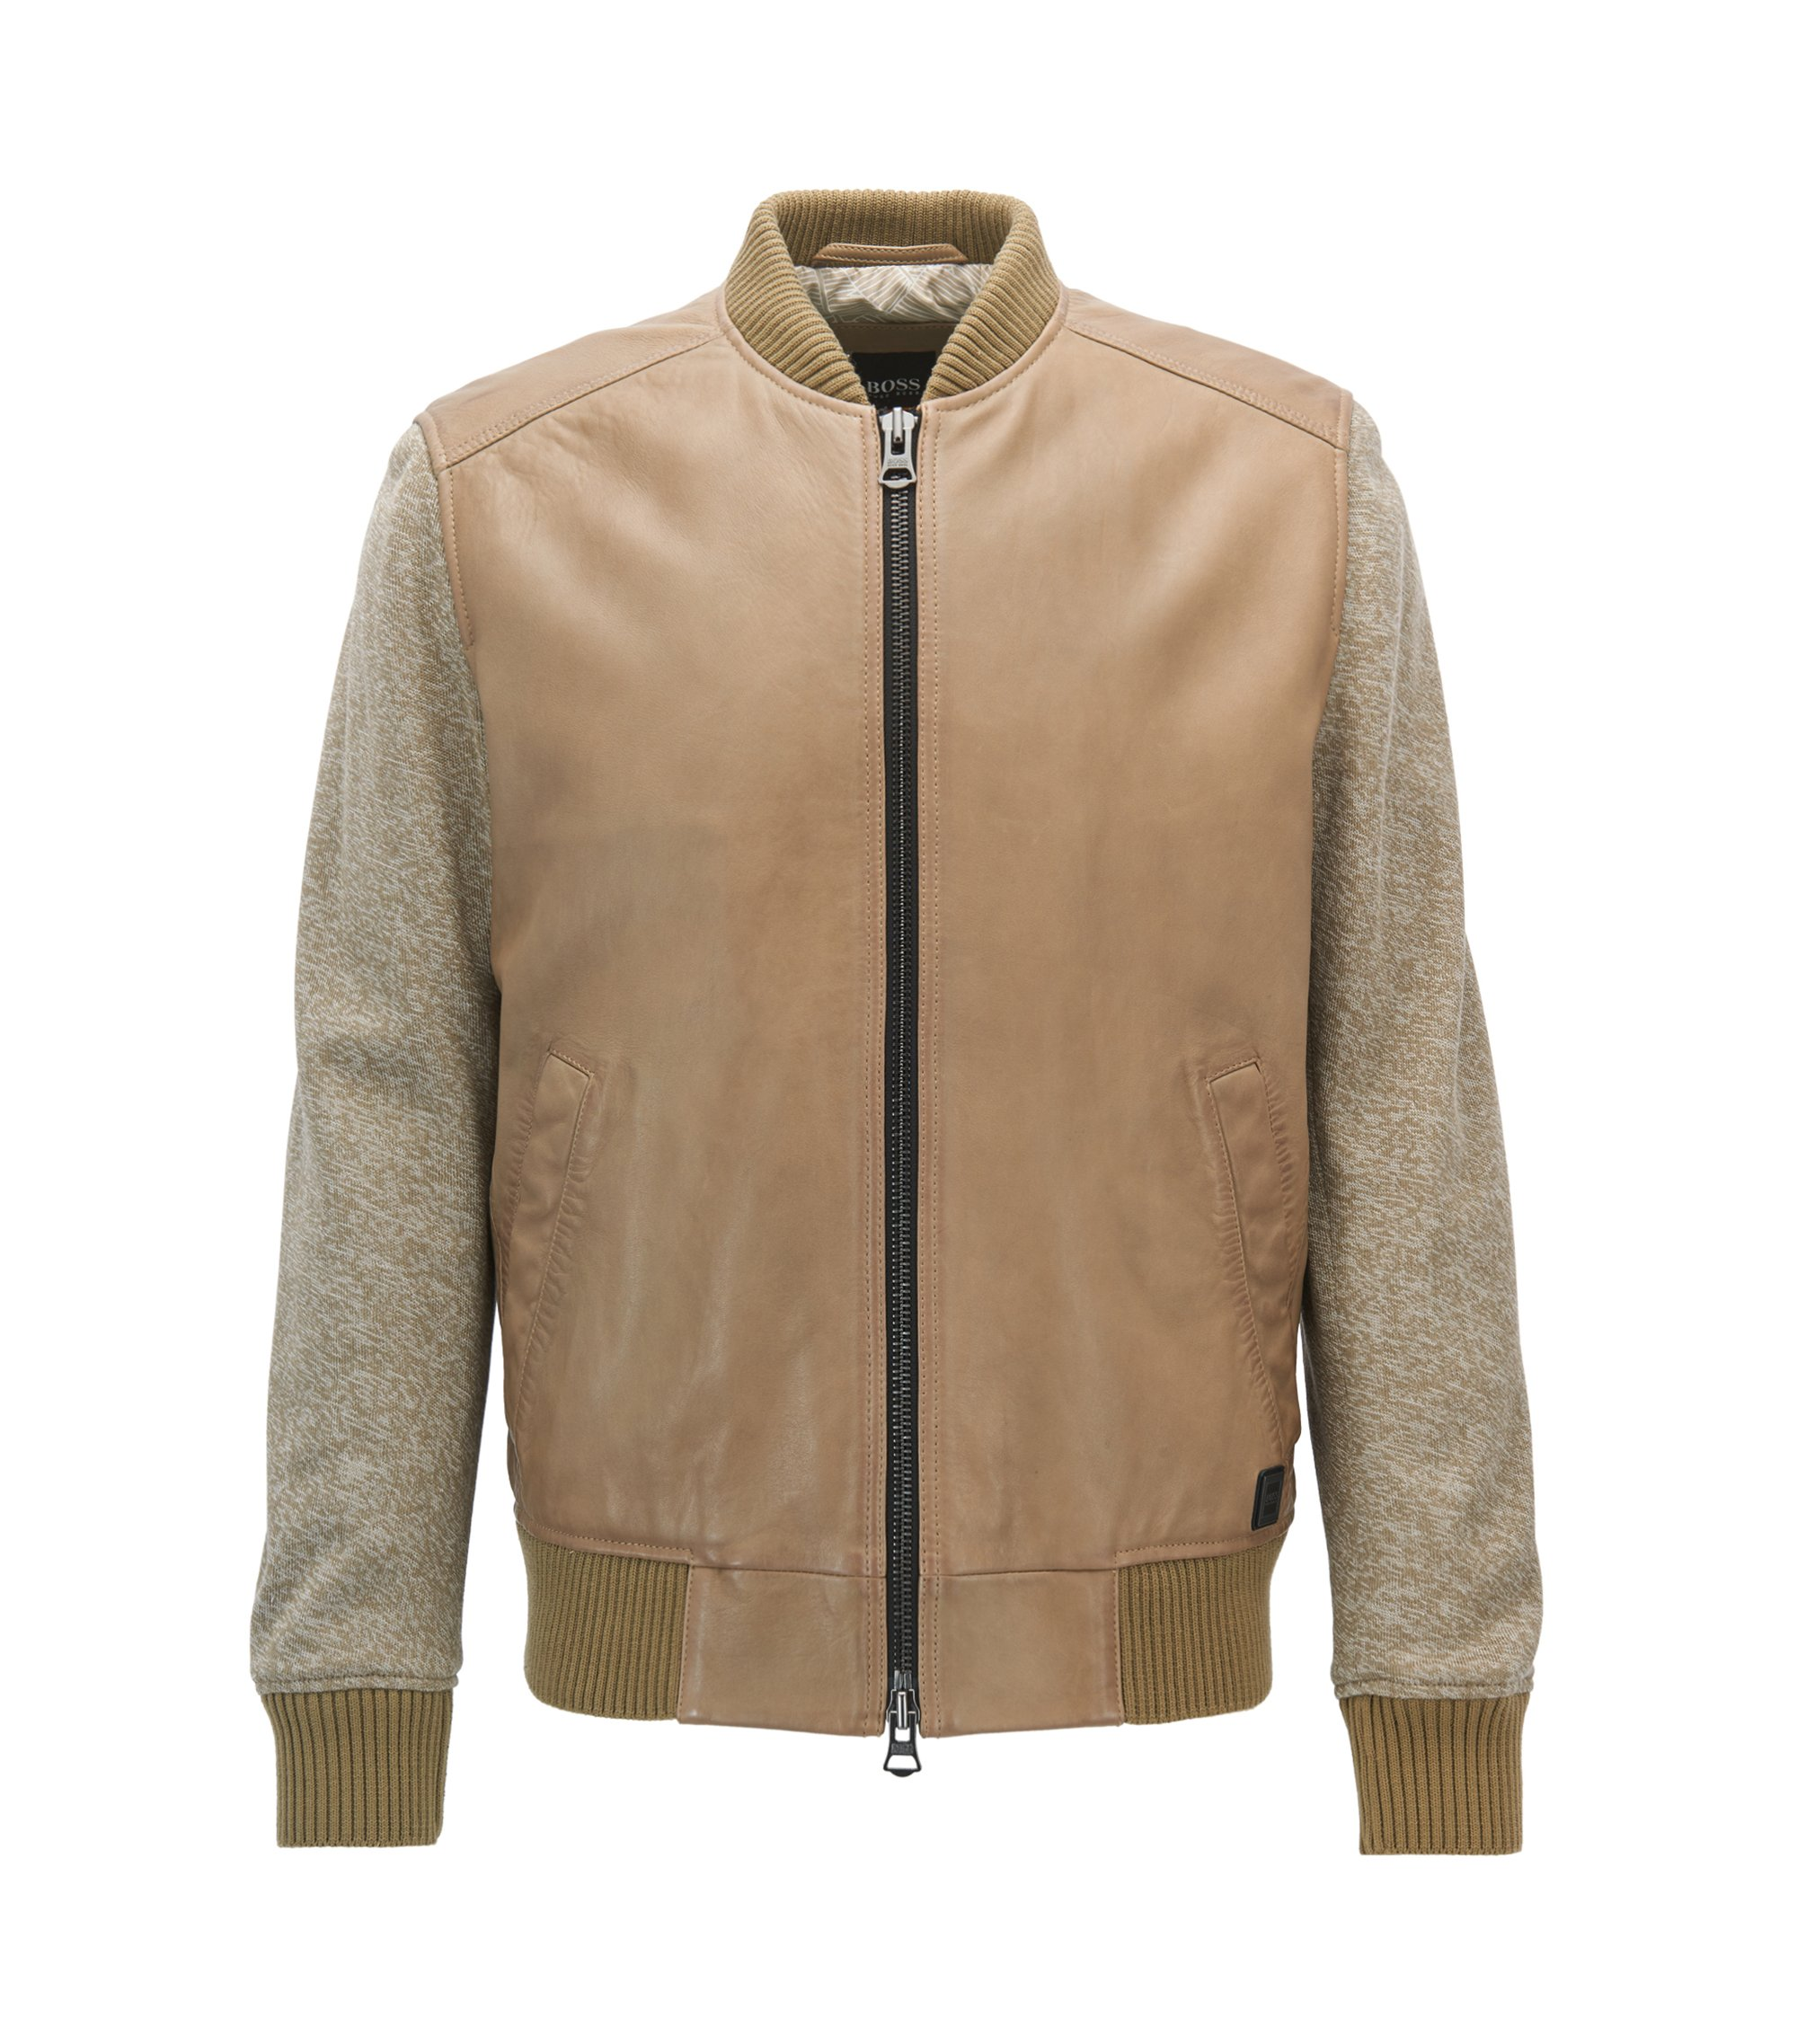 Bomber jacket in leather with knitted sleeves, Beige